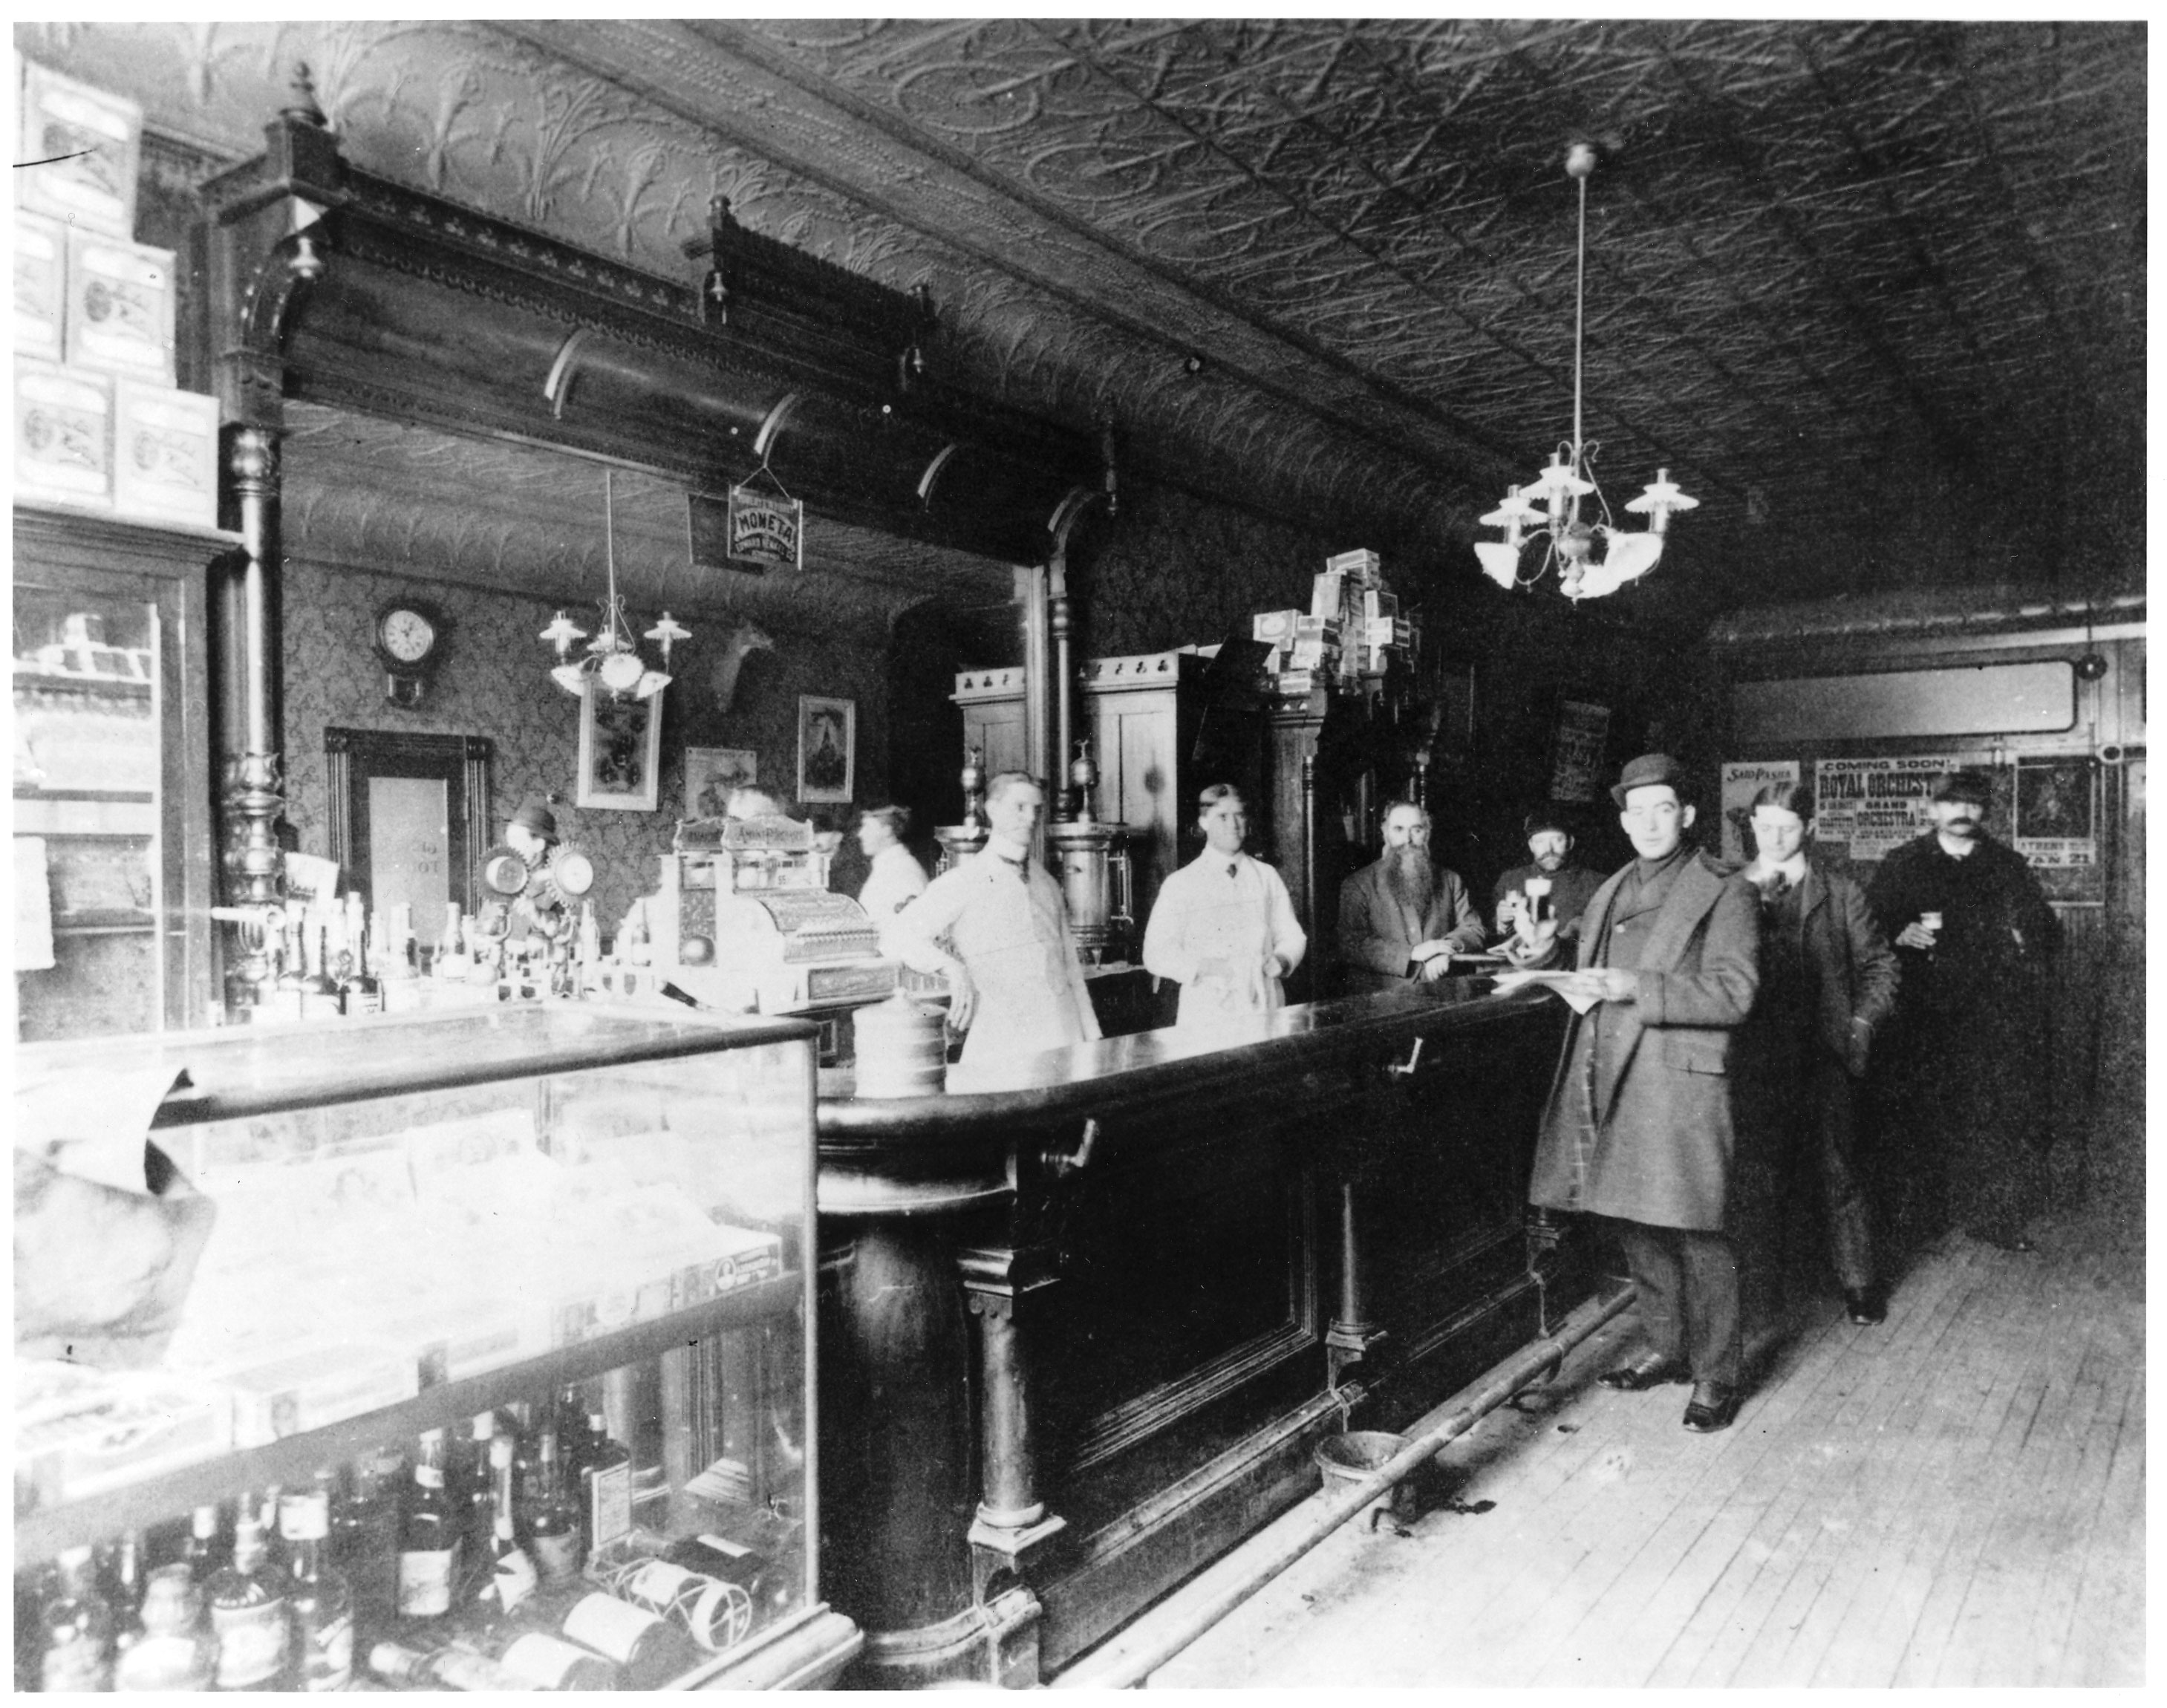 The hotel bar image